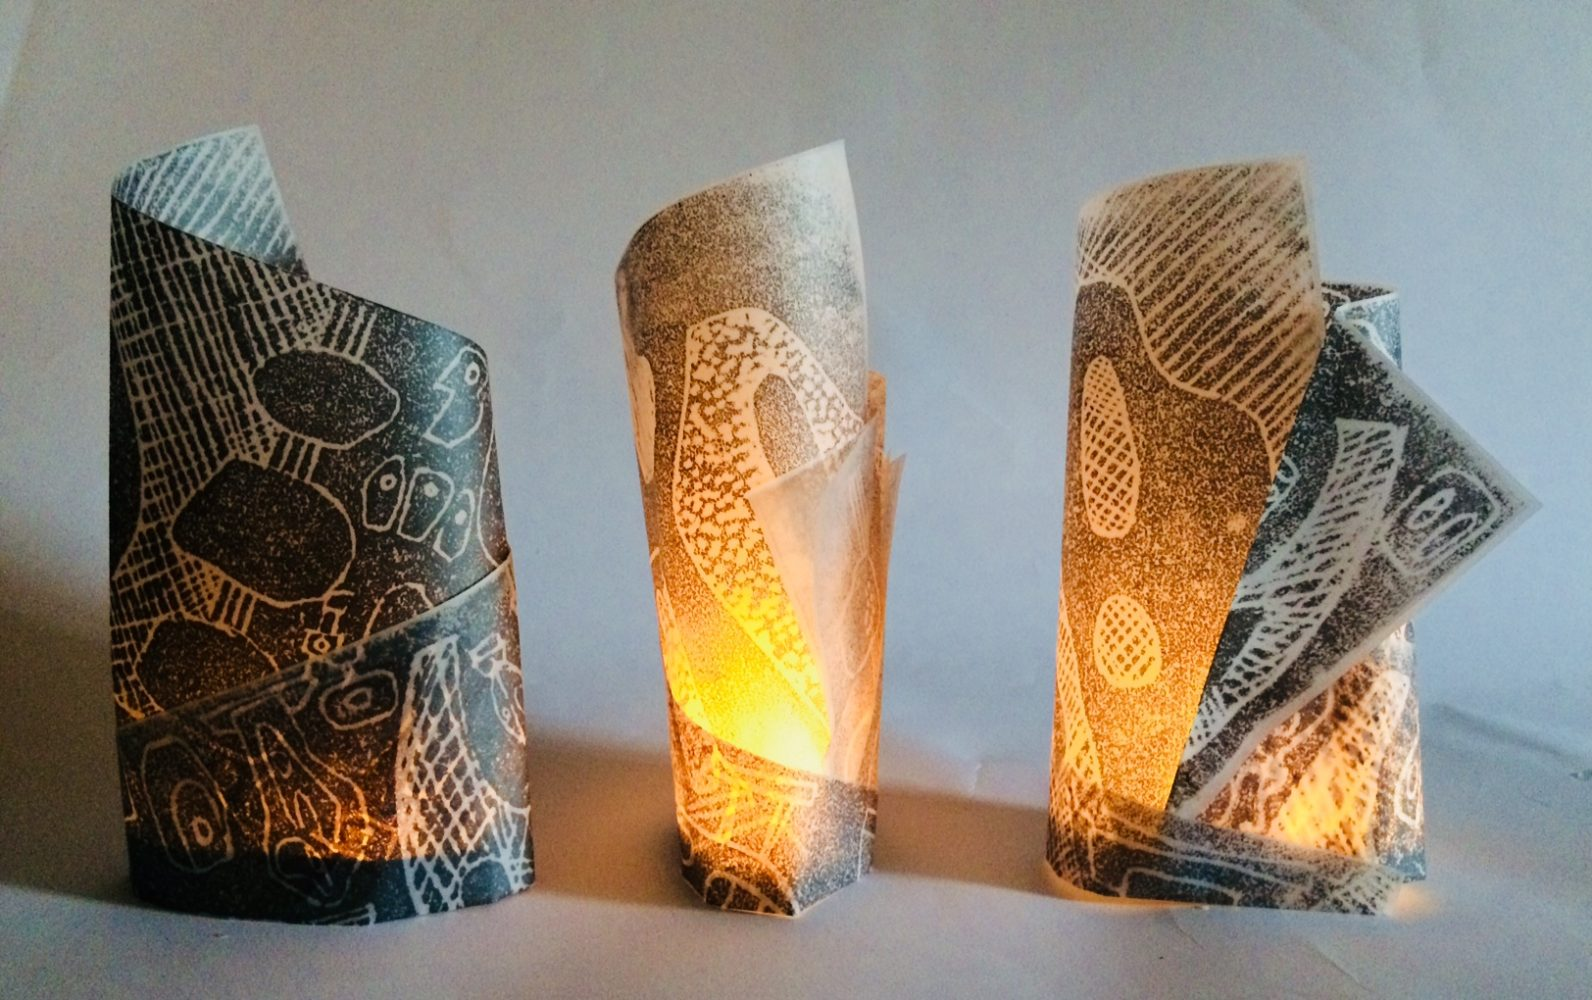 Hepworth Winter Lanterns